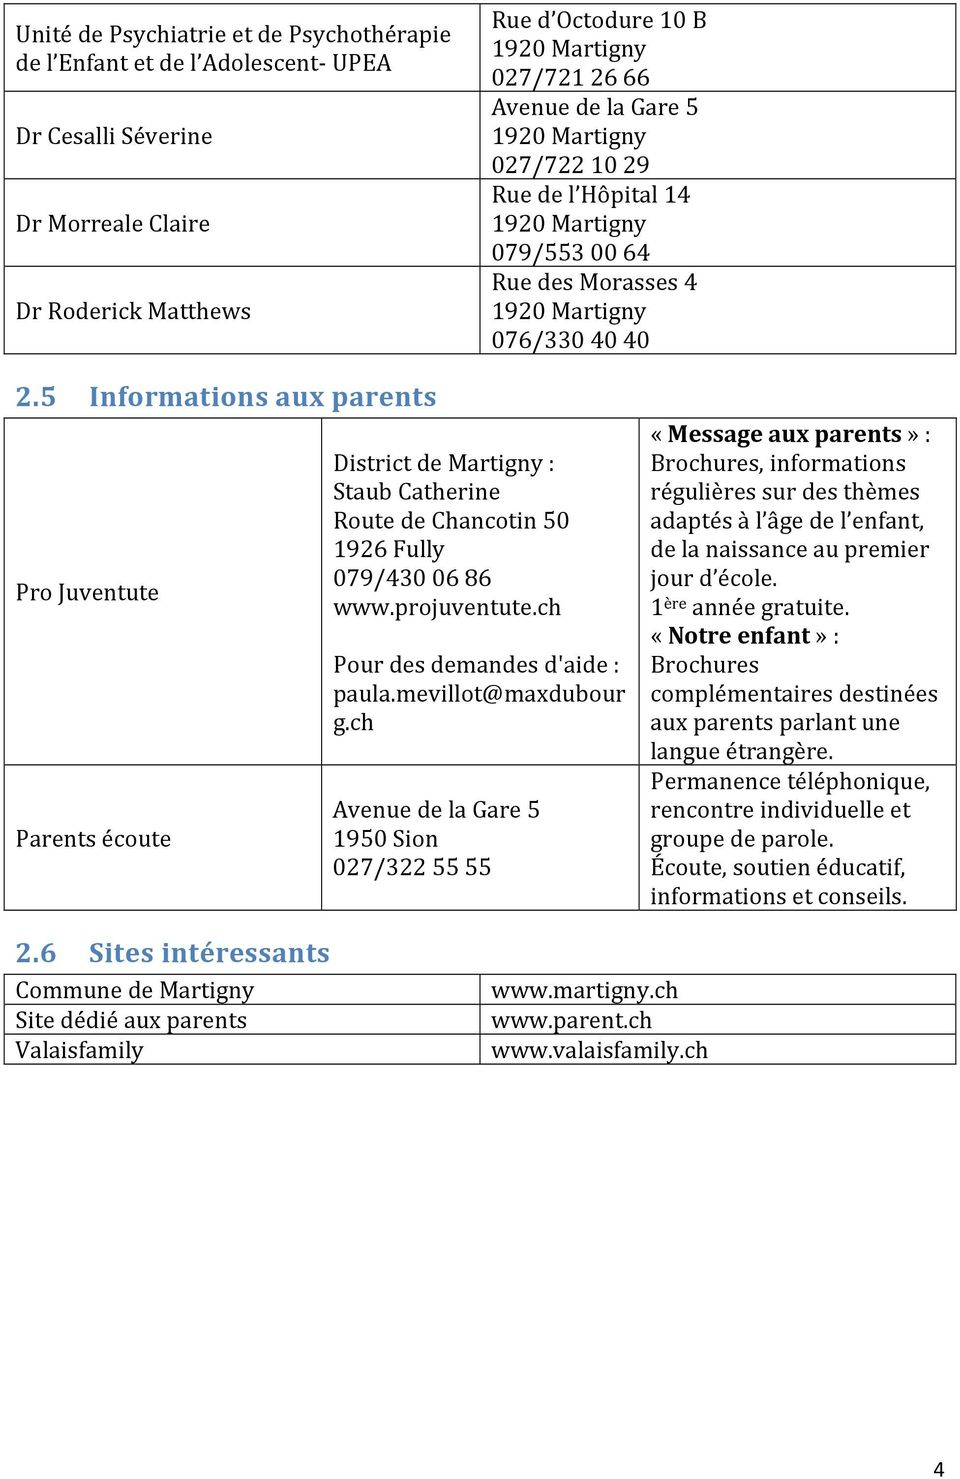 5 Informations aux parents Pro Juventute Parents écoute District de Martigny : Staub Catherine Route de Chancotin 50 1926 Fully 079/430 06 86 www.projuventute.ch Pour des demandes d'aide : paula.